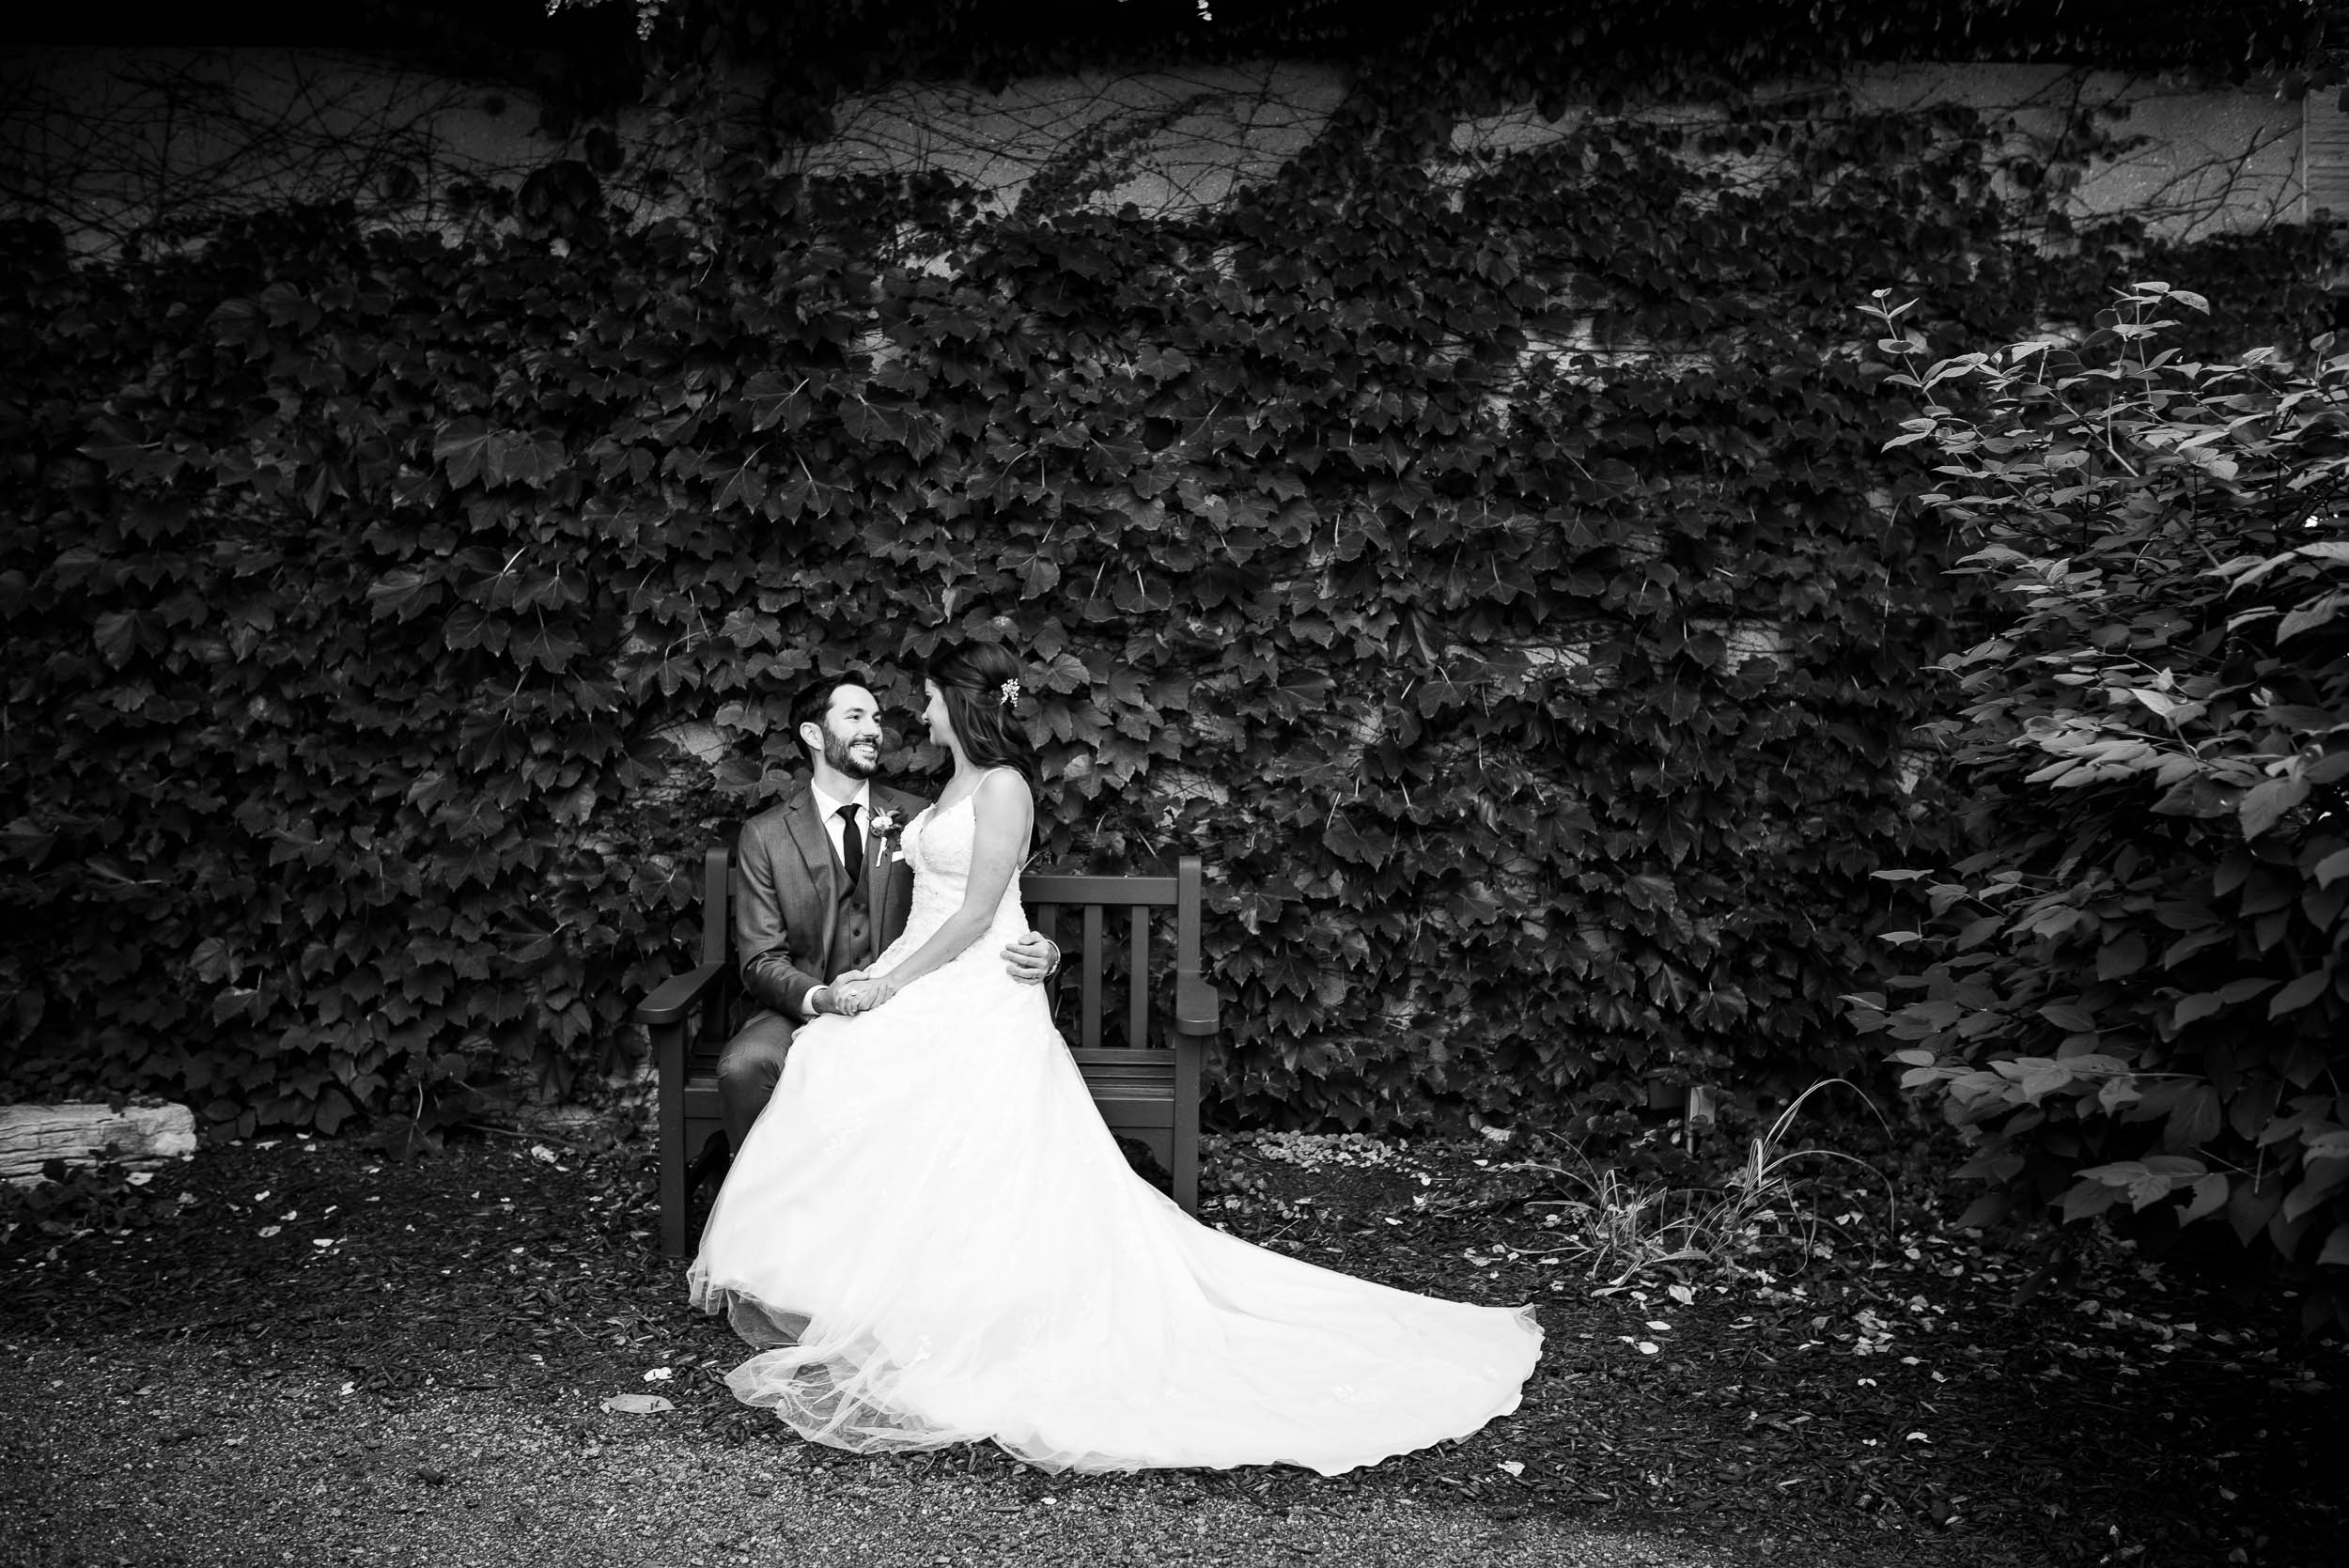 Bride and groom outdoor wedding photos at Grand Geneve Resort Fall Chicago Wedding captured by J. Brown Photography. Visit jbrownphotography.com for more wedding inspiration!